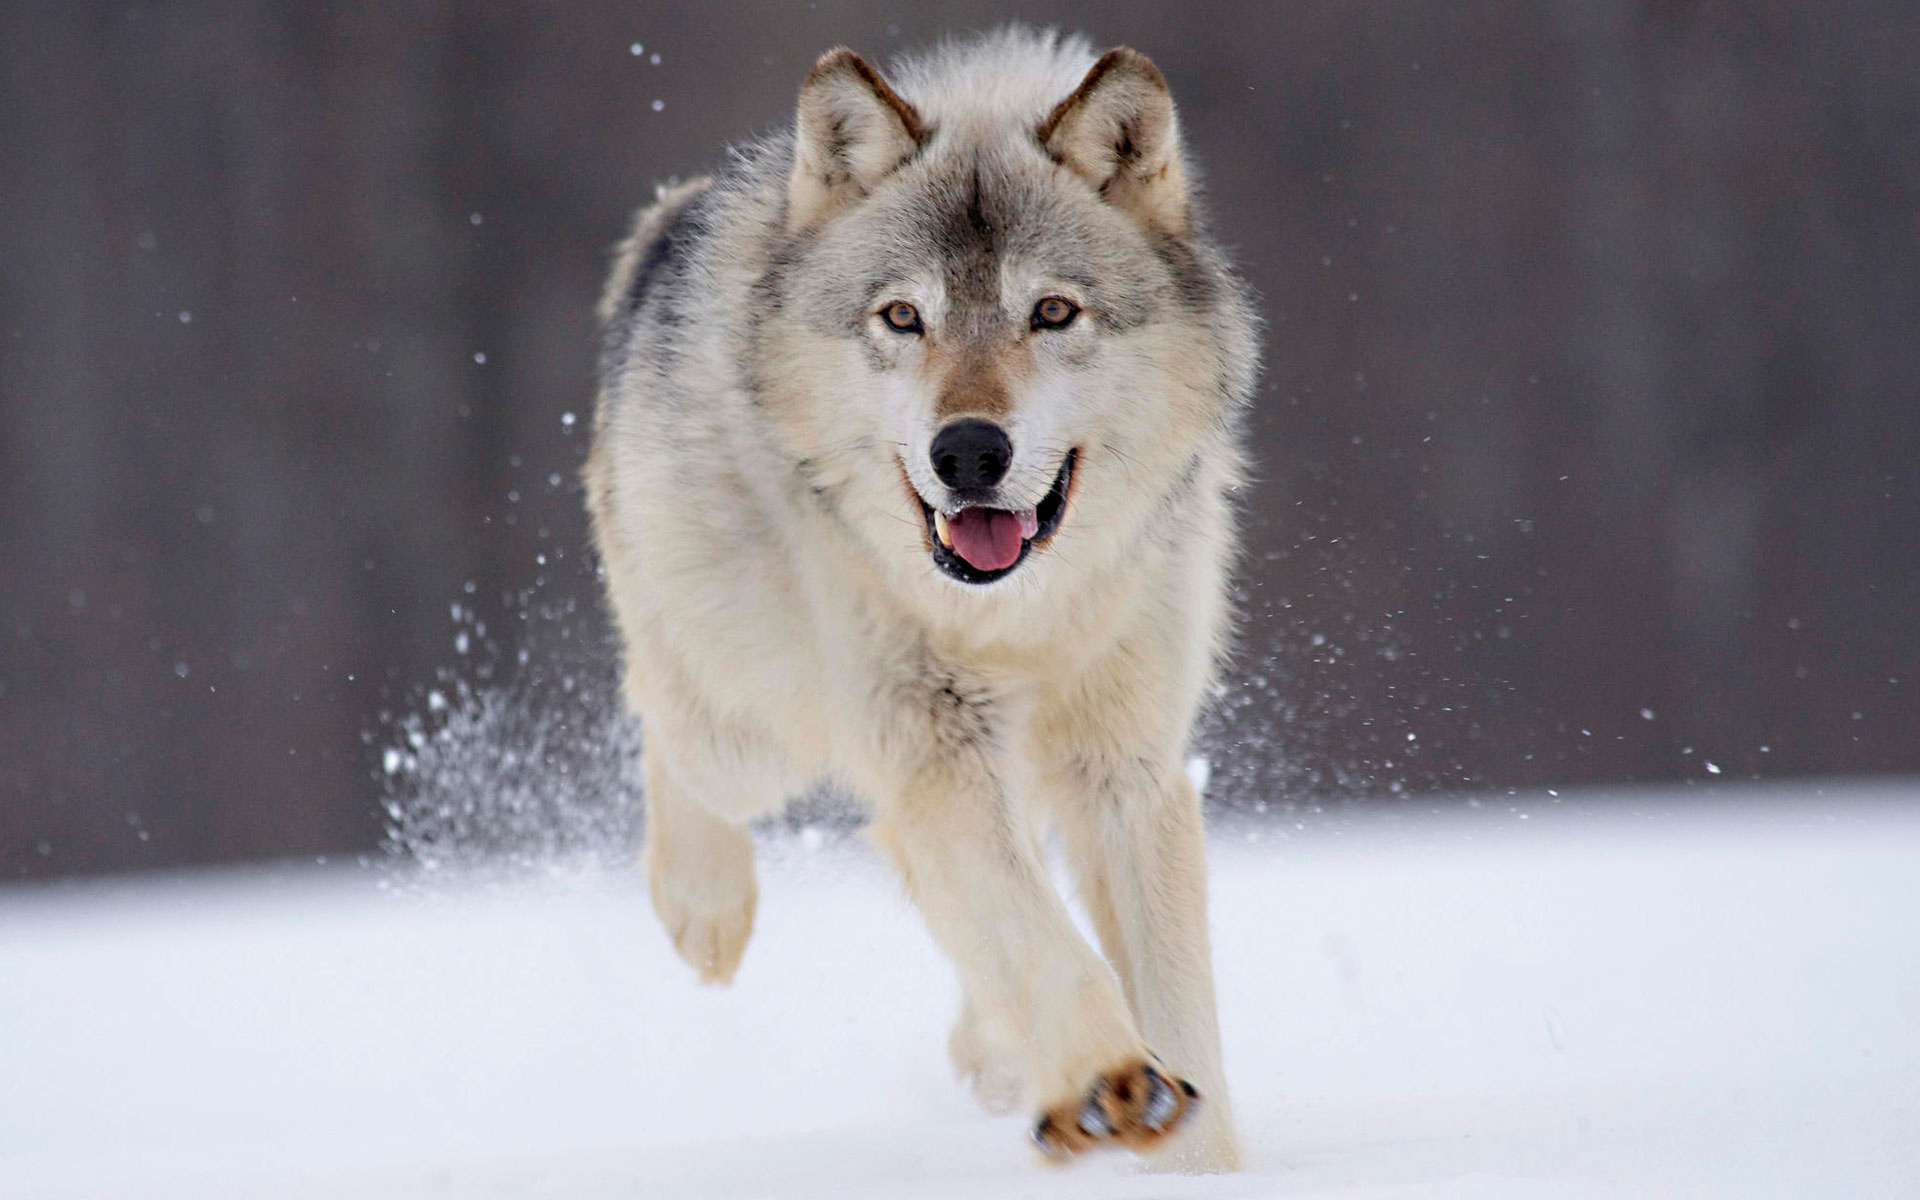 download wallpaper: wolf in de sneeuw wallpaper